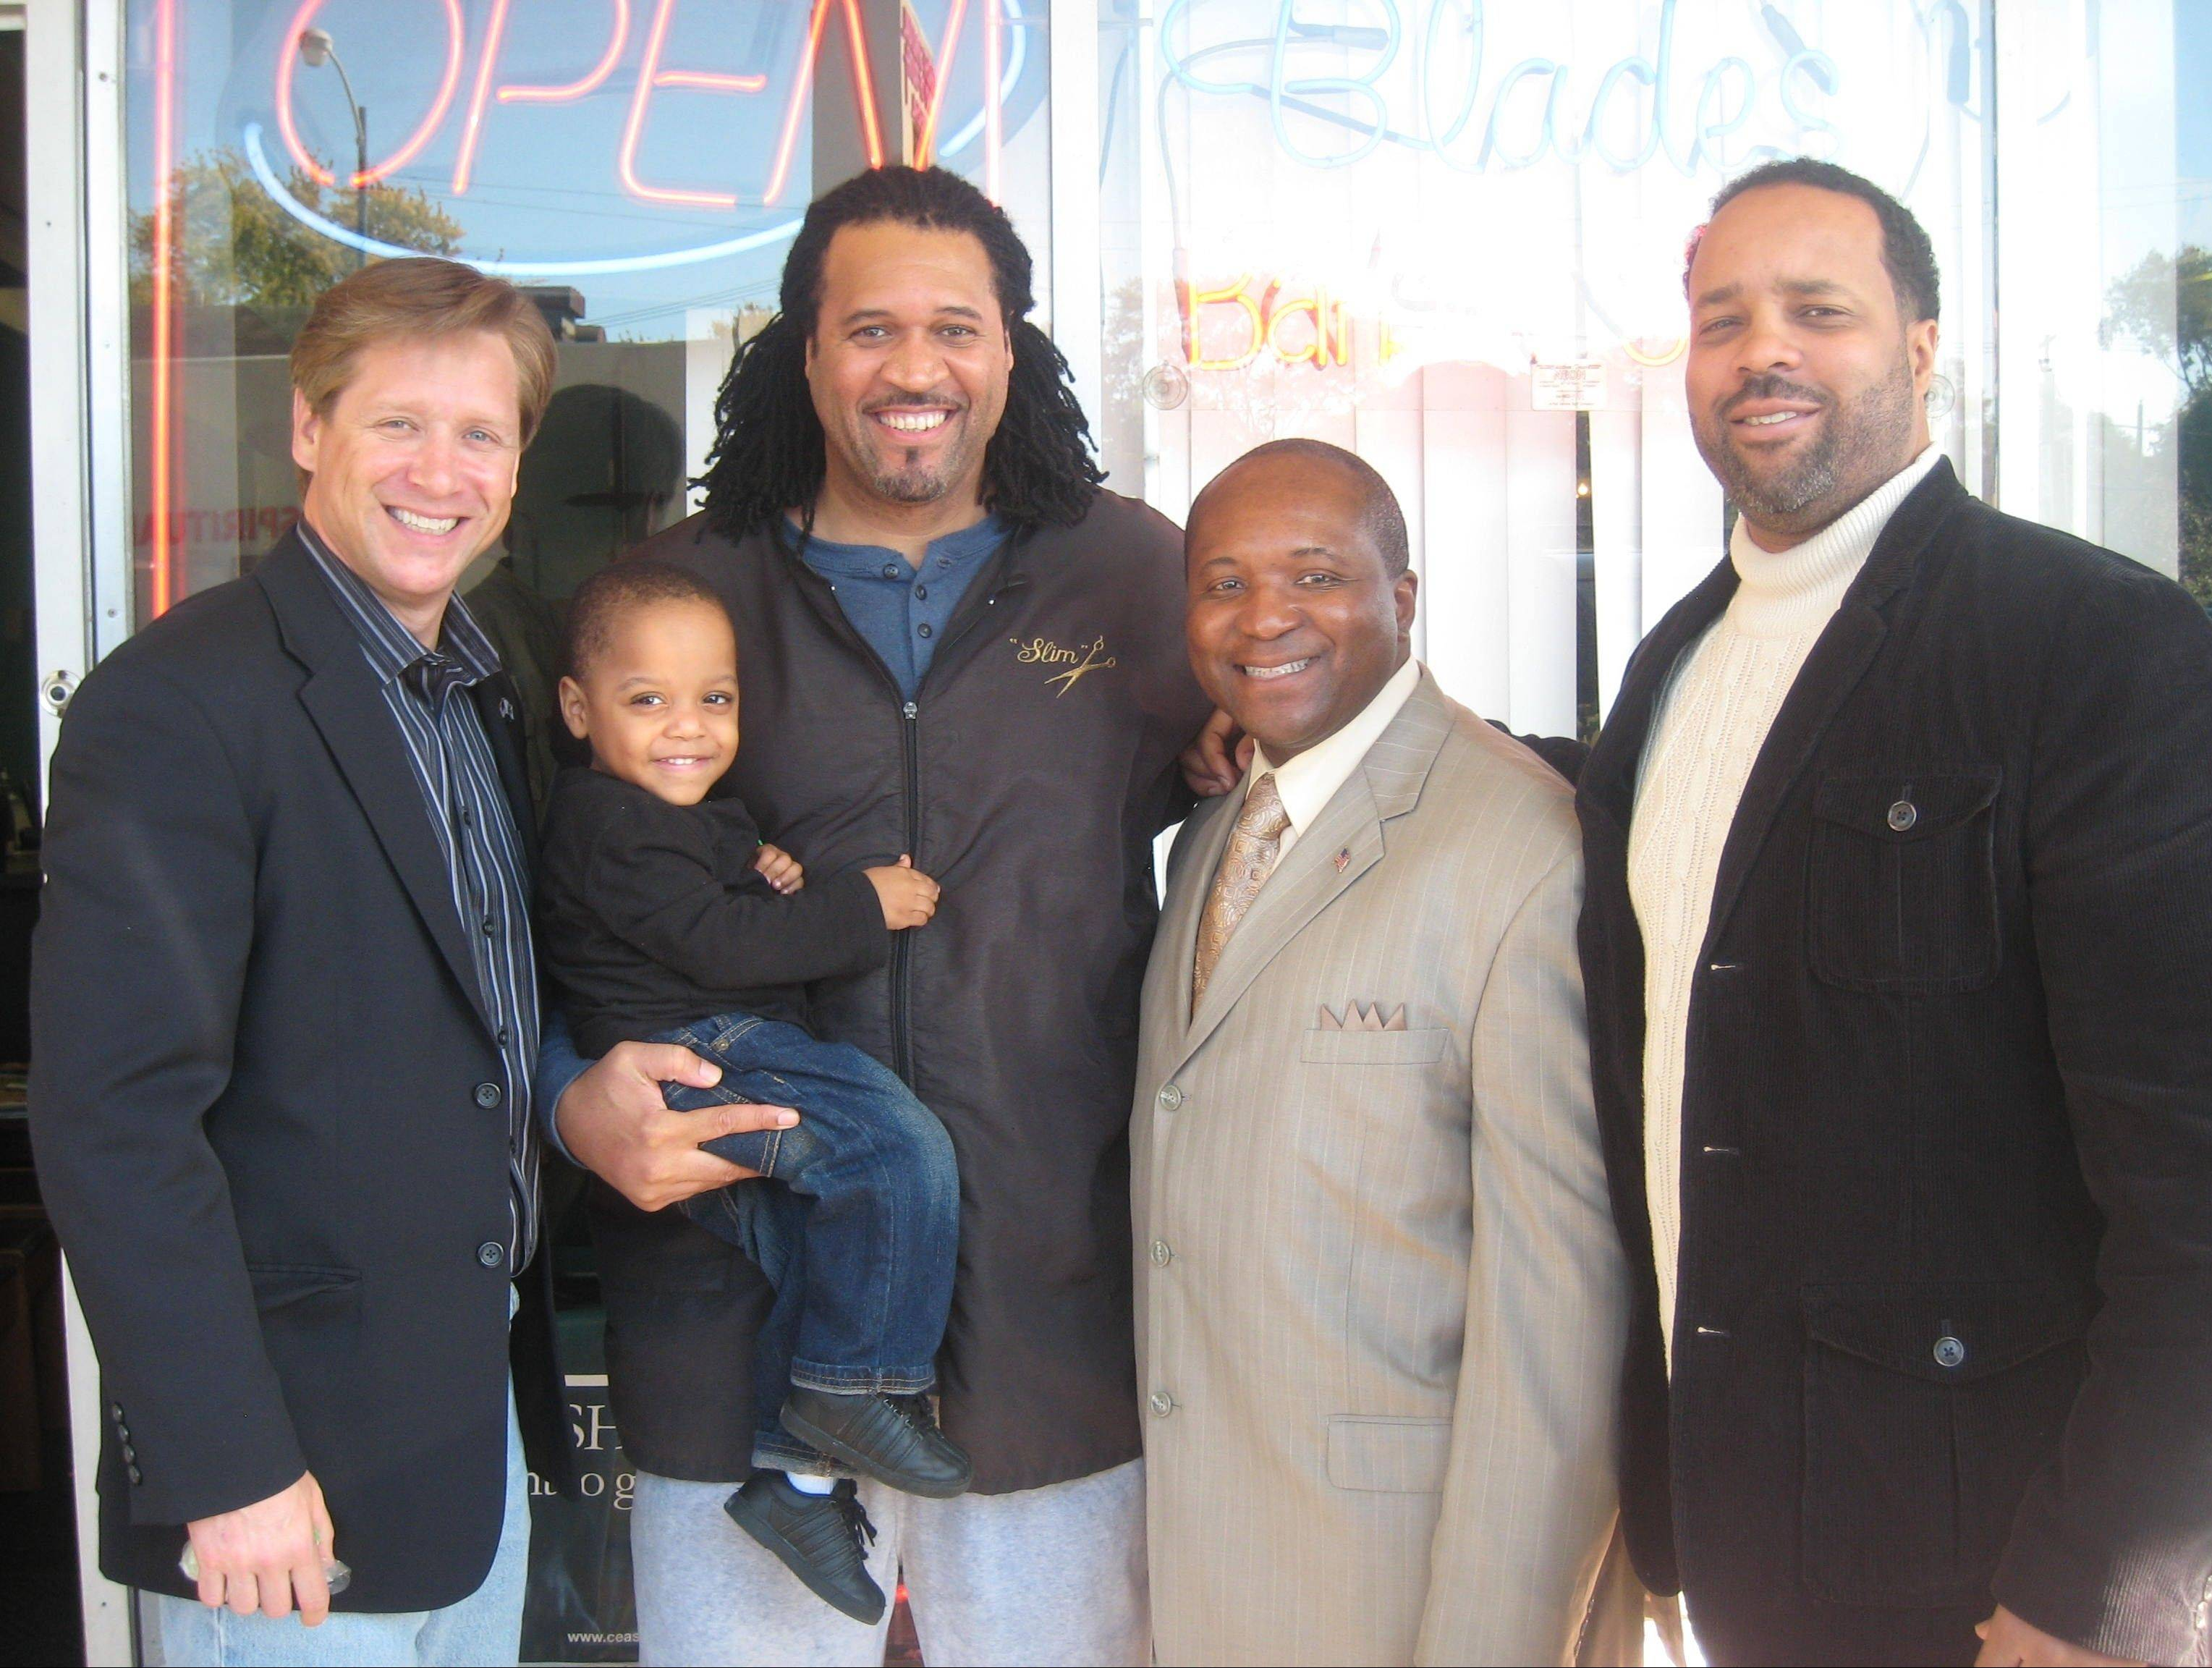 Illinois Sen. Dan Duffy, left, of Lake Barrington, got to know Jeffery Coleman, far right, and his brother Philip, during Barbershop Tours held for politician on the South Side of Chicago. Duffy is now researching legislation to better regulate the use of stun guns, after Philip Coleman died after Chicago police used a stun gun on him twice.